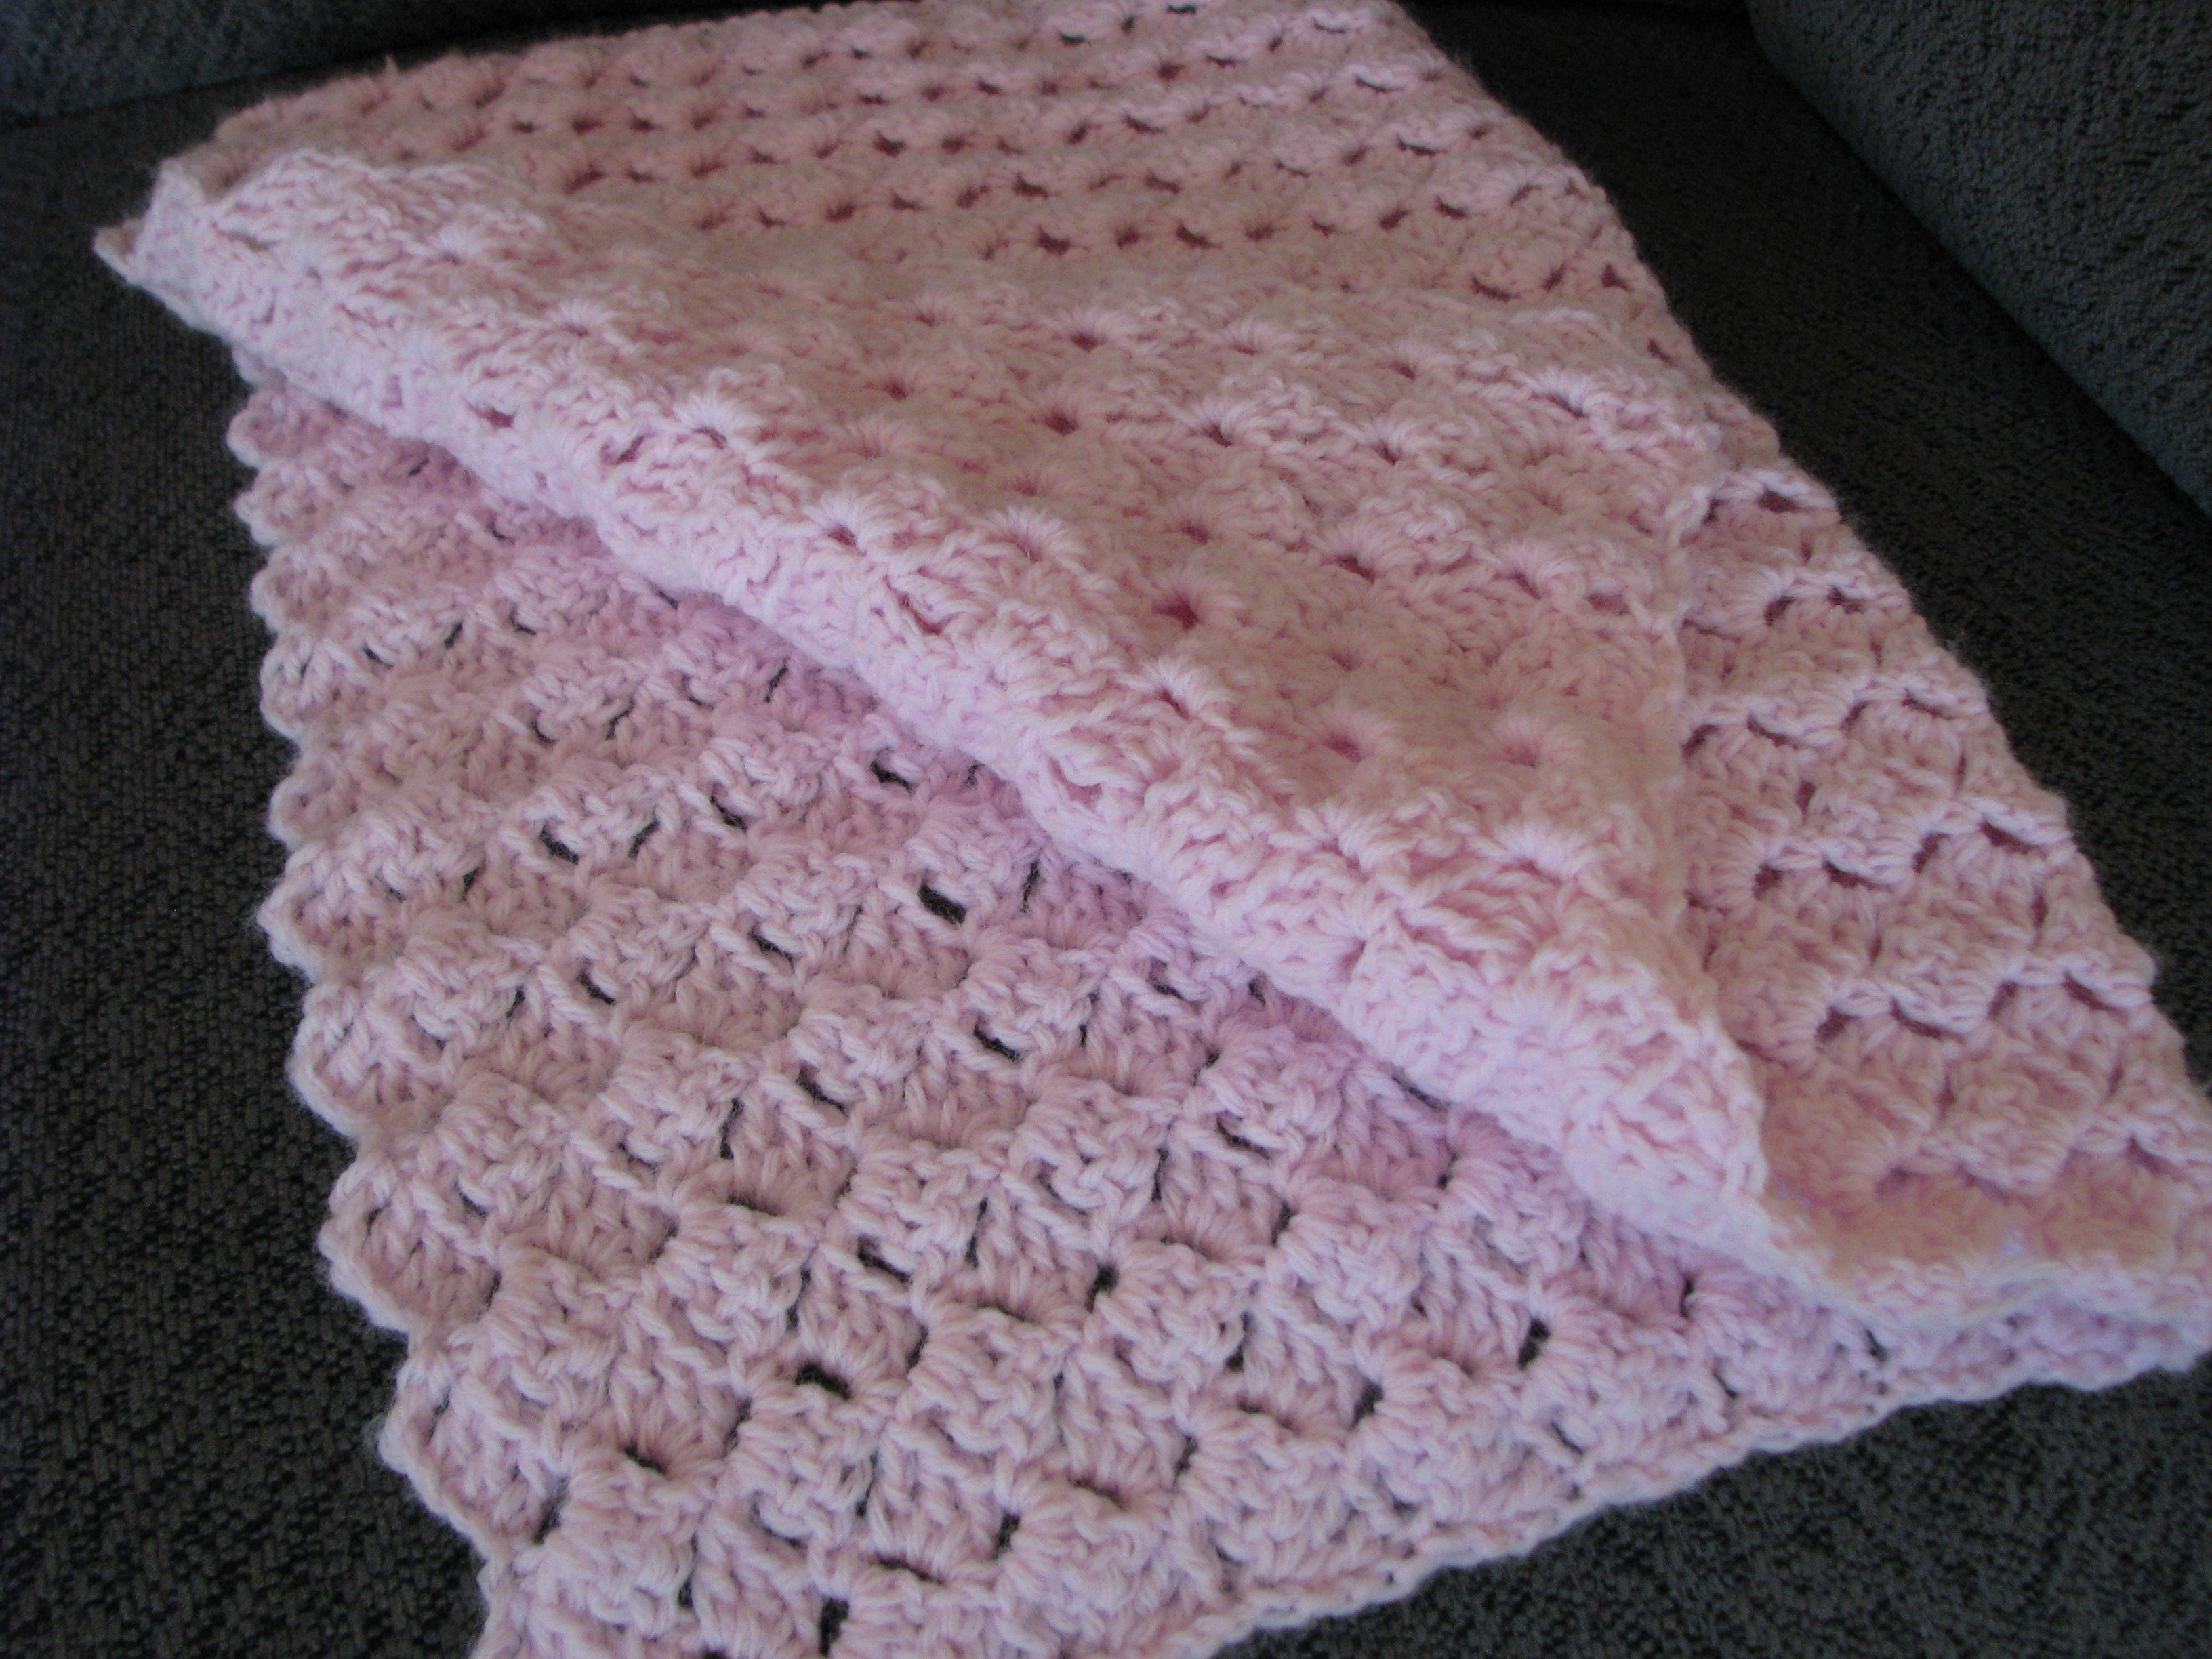 Afghan Blanket Crochet Pattern Awesome Homemade for the Holidays 20 Crocheted Baby Blanket or Of Incredible 43 Pictures Afghan Blanket Crochet Pattern